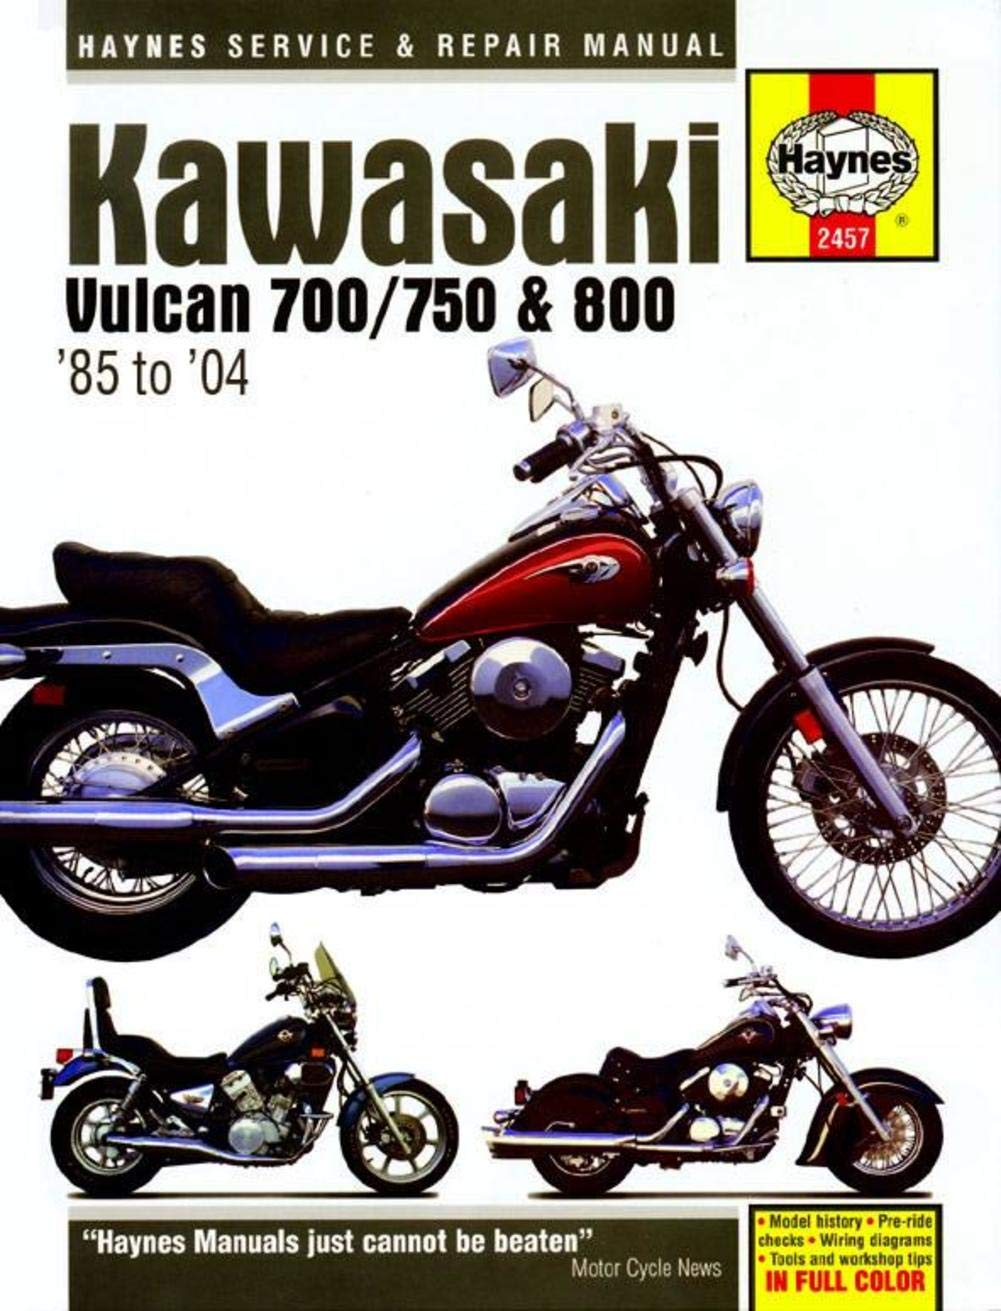 750 Kawasaki Motorcycle Wiring Diagram Reinvent Your 220 4 Wheeler Electrical Diagrams Amazon Com Haynes Vulcan 700 800 Manual M2457 Automotive Rh 1982 200